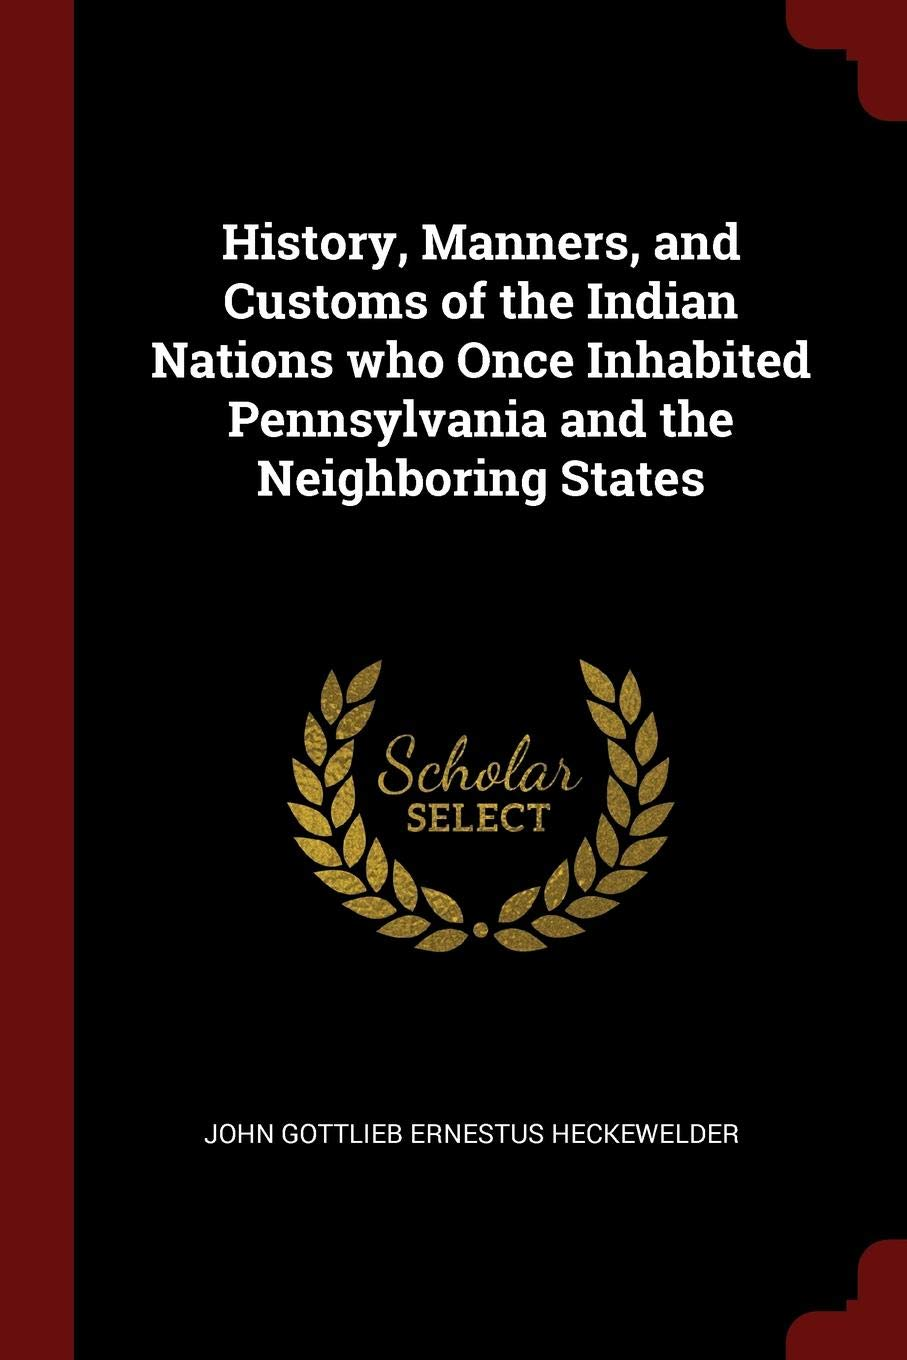 History, Manners, and Customs of the Indian Nations who Once Inhabited Pennsylvania and the Neighboring States John Gottlieb Ernestus Heckewelder